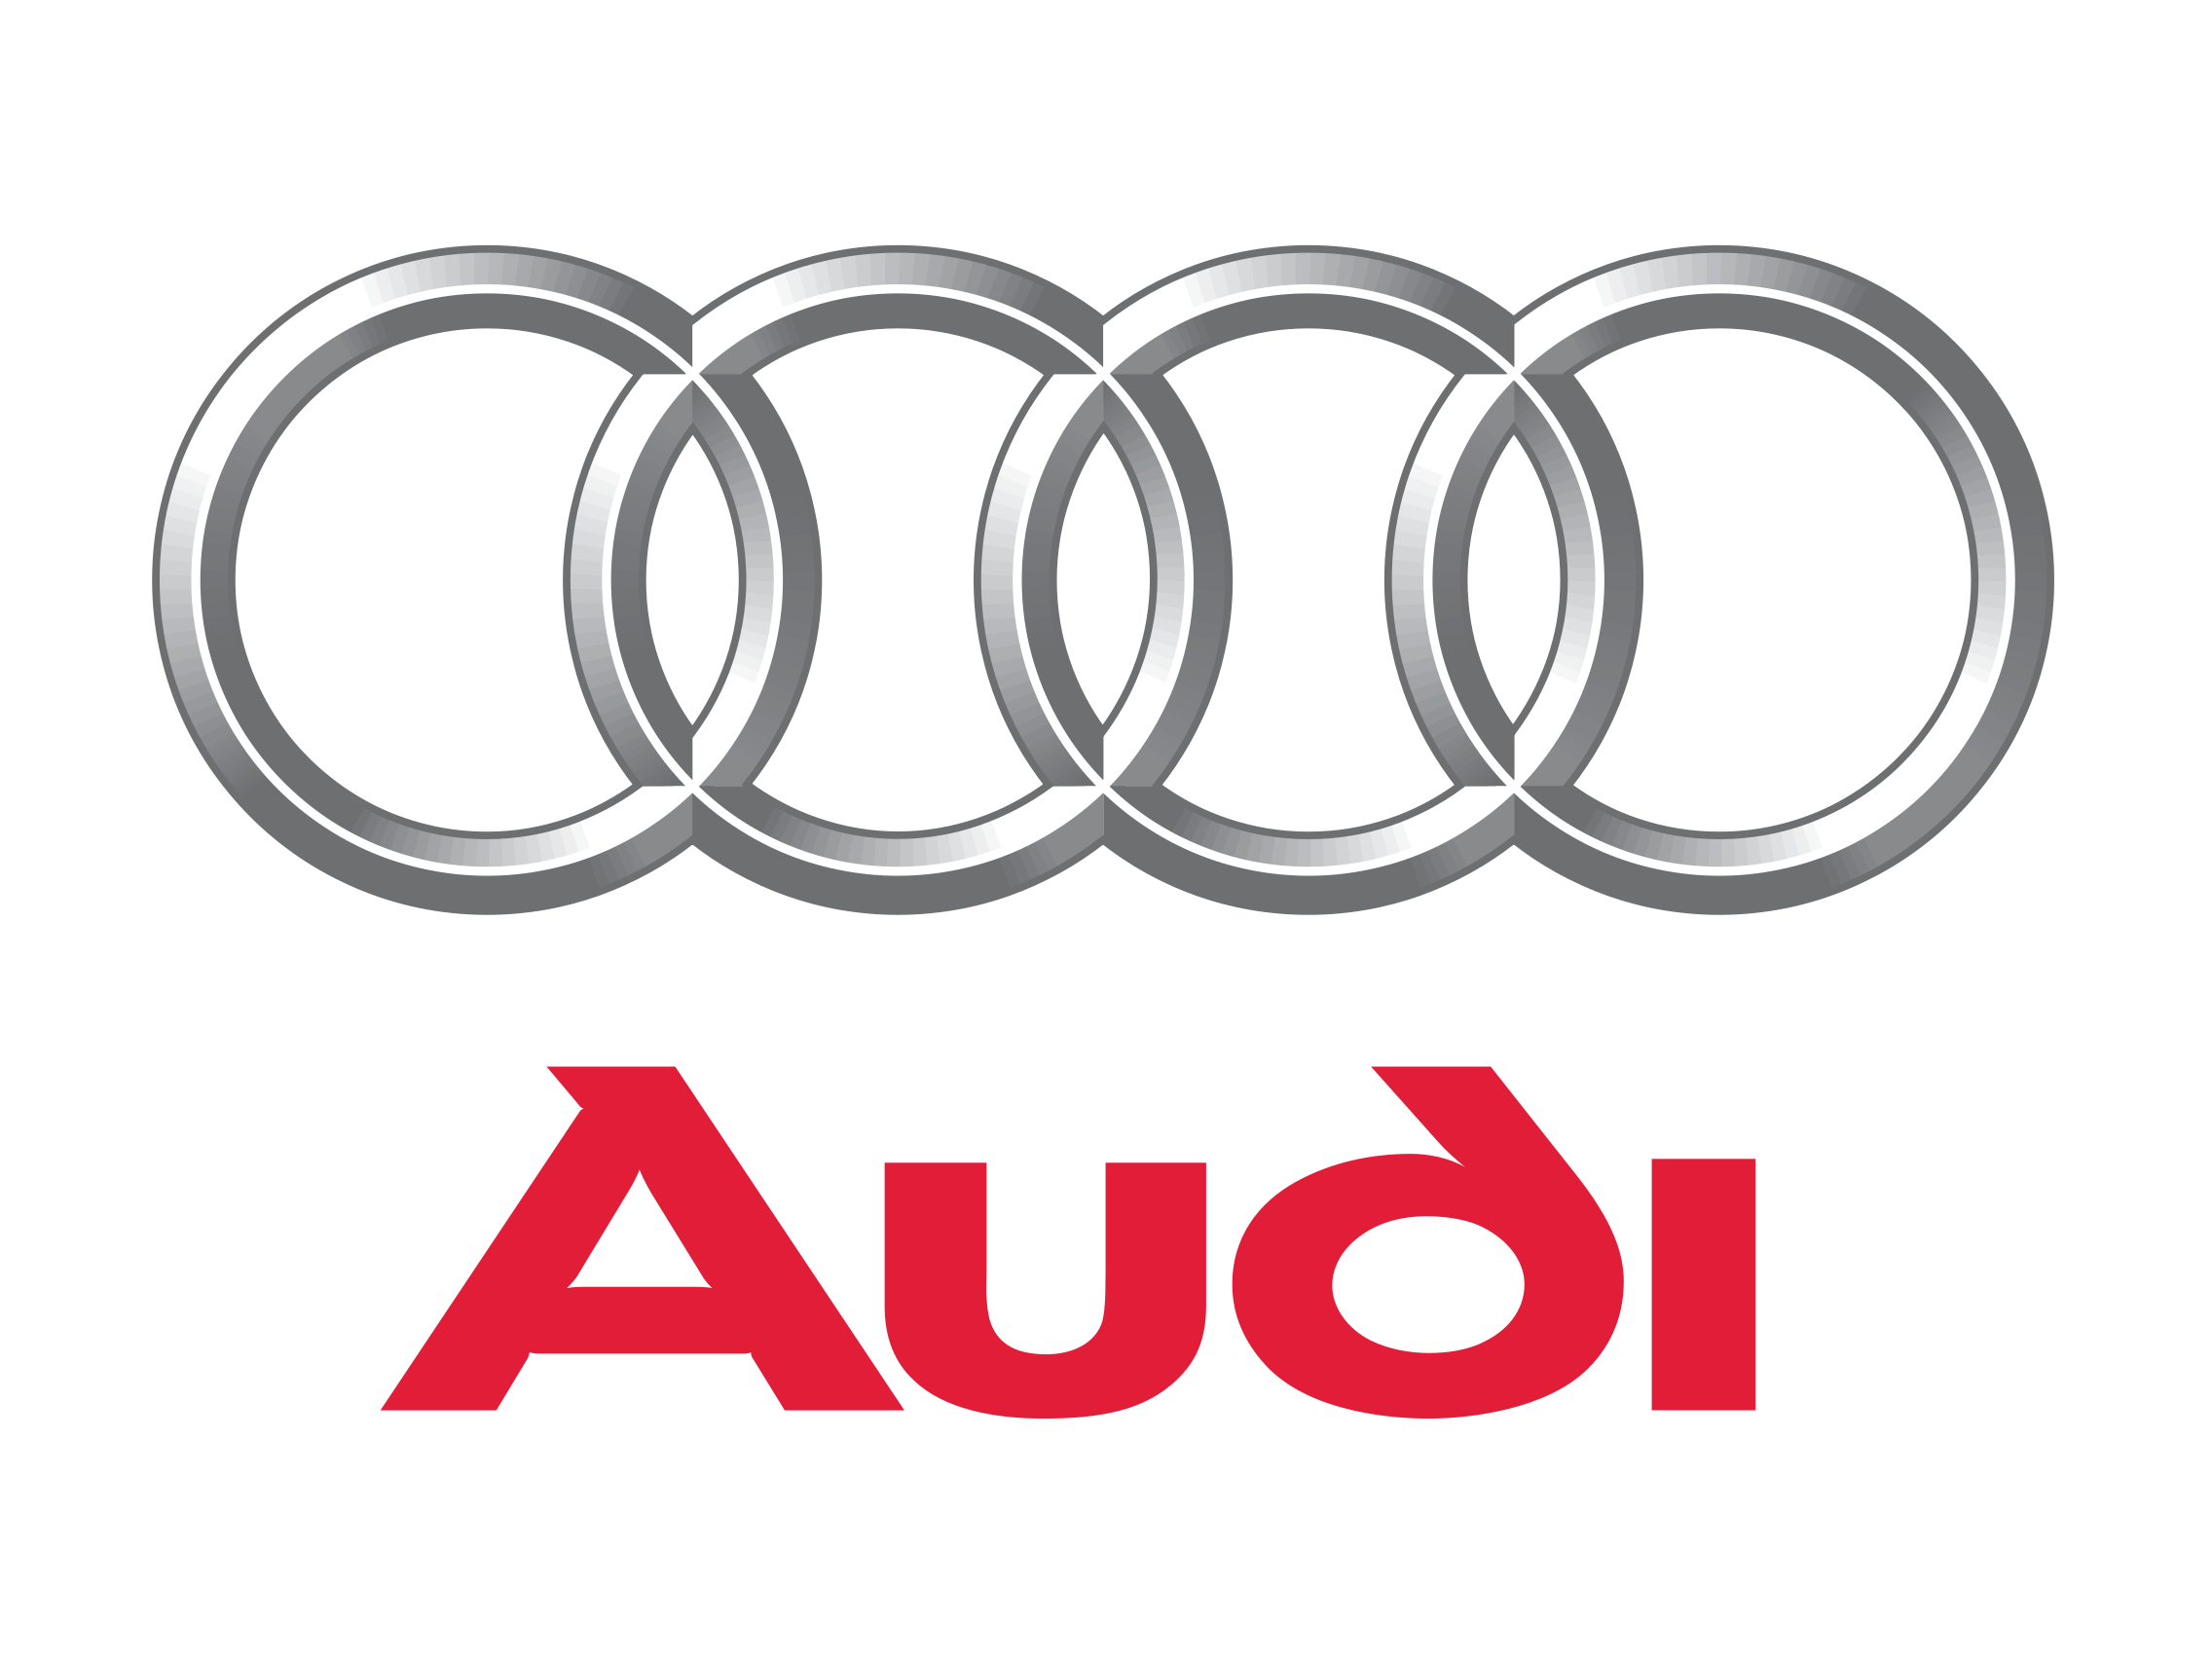 Get Online #workshop #manual for #Audi all model's from Emanualonline.com |  Car logos, Audi logo, Audi cars